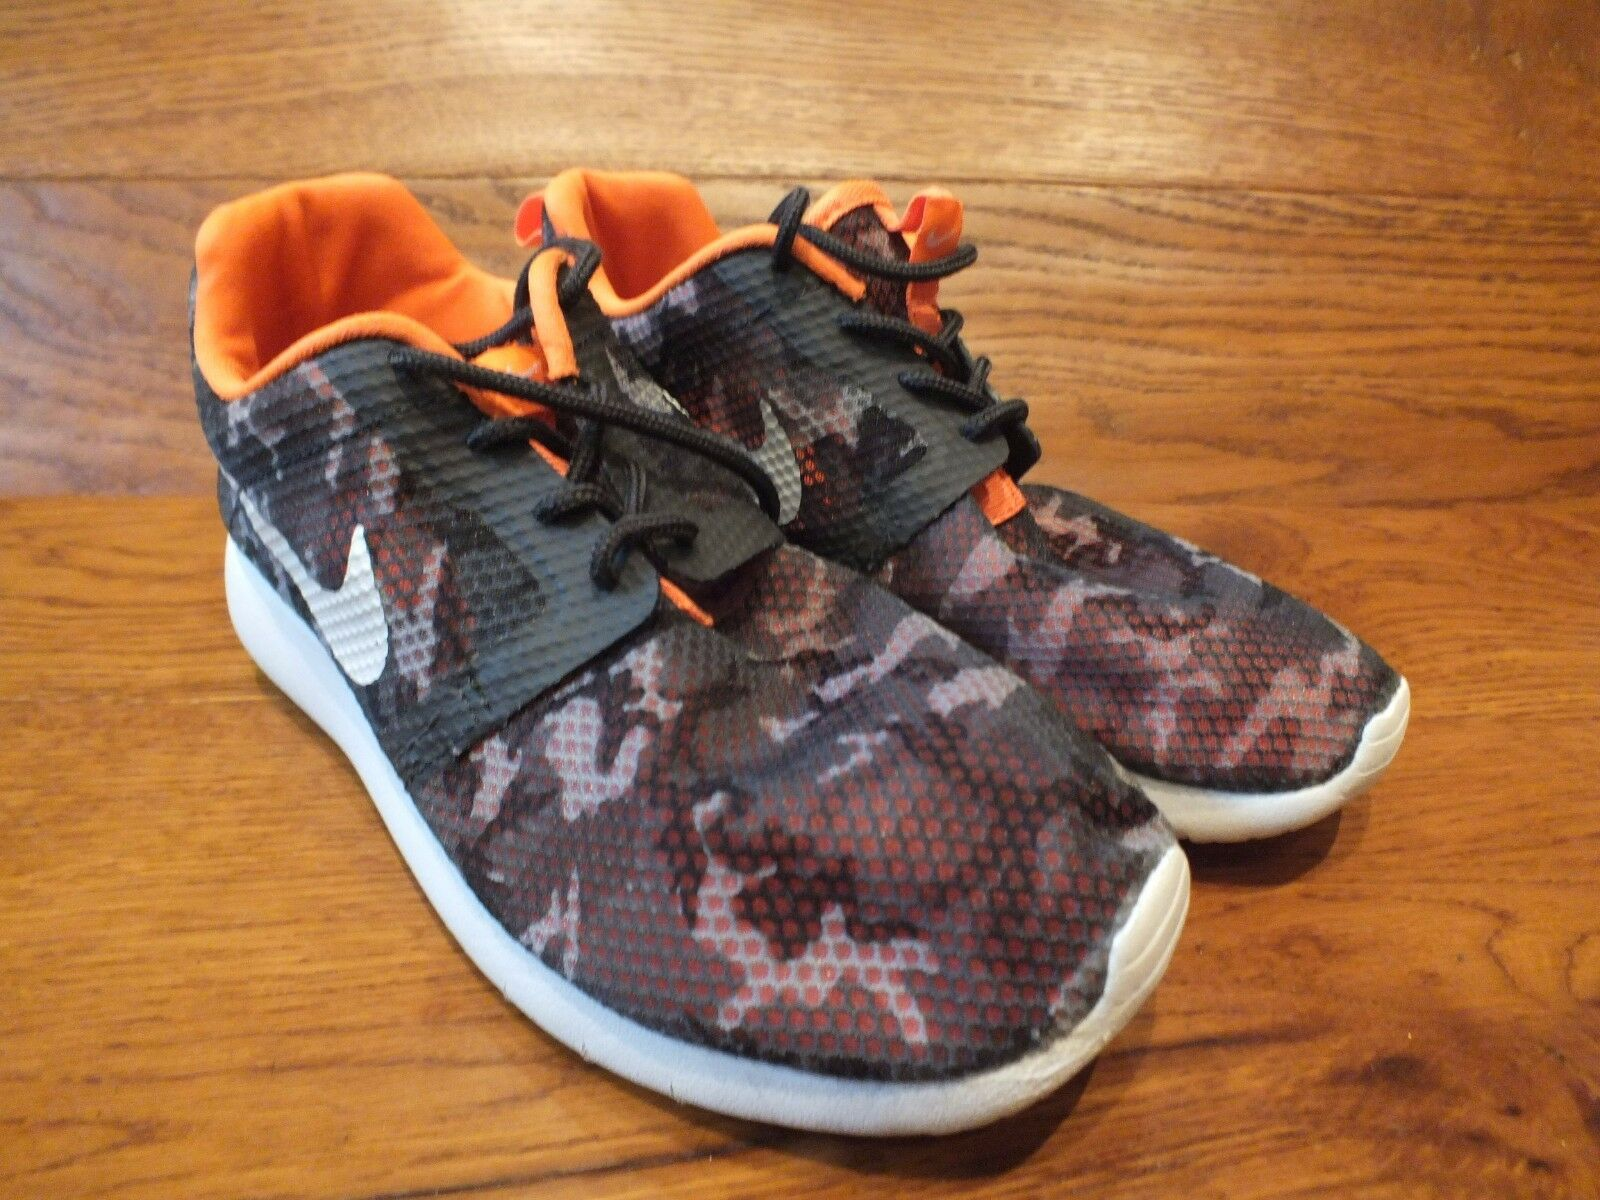 Nike Roshe One Flight Weight Running Shoes Trainers Comfortable New shoes for men and women, limited time discount